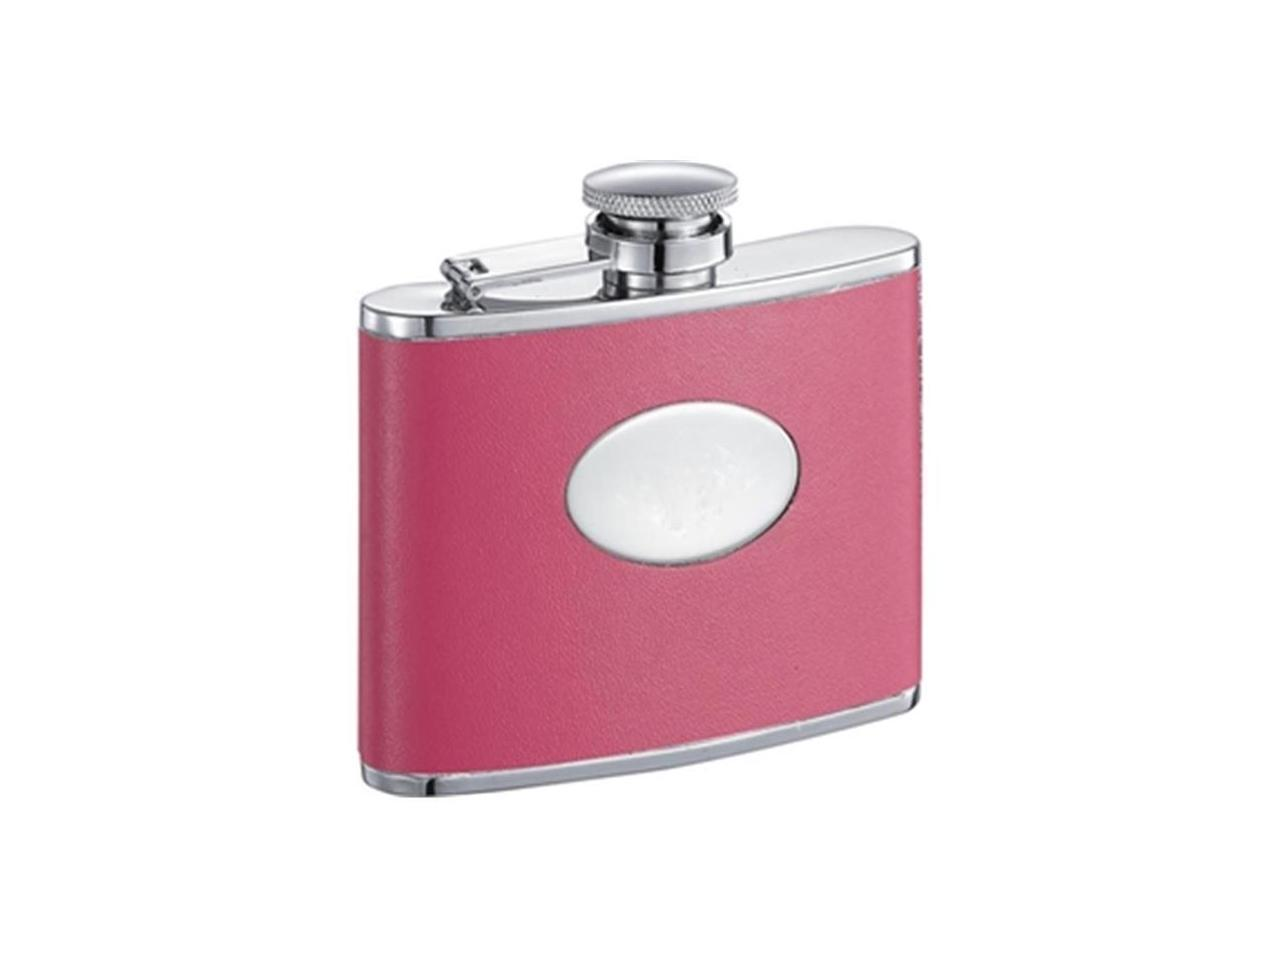 Britney Hot Pink Leather Stainless Steel 4oz Hip Flask Vf1256 Newegg Com